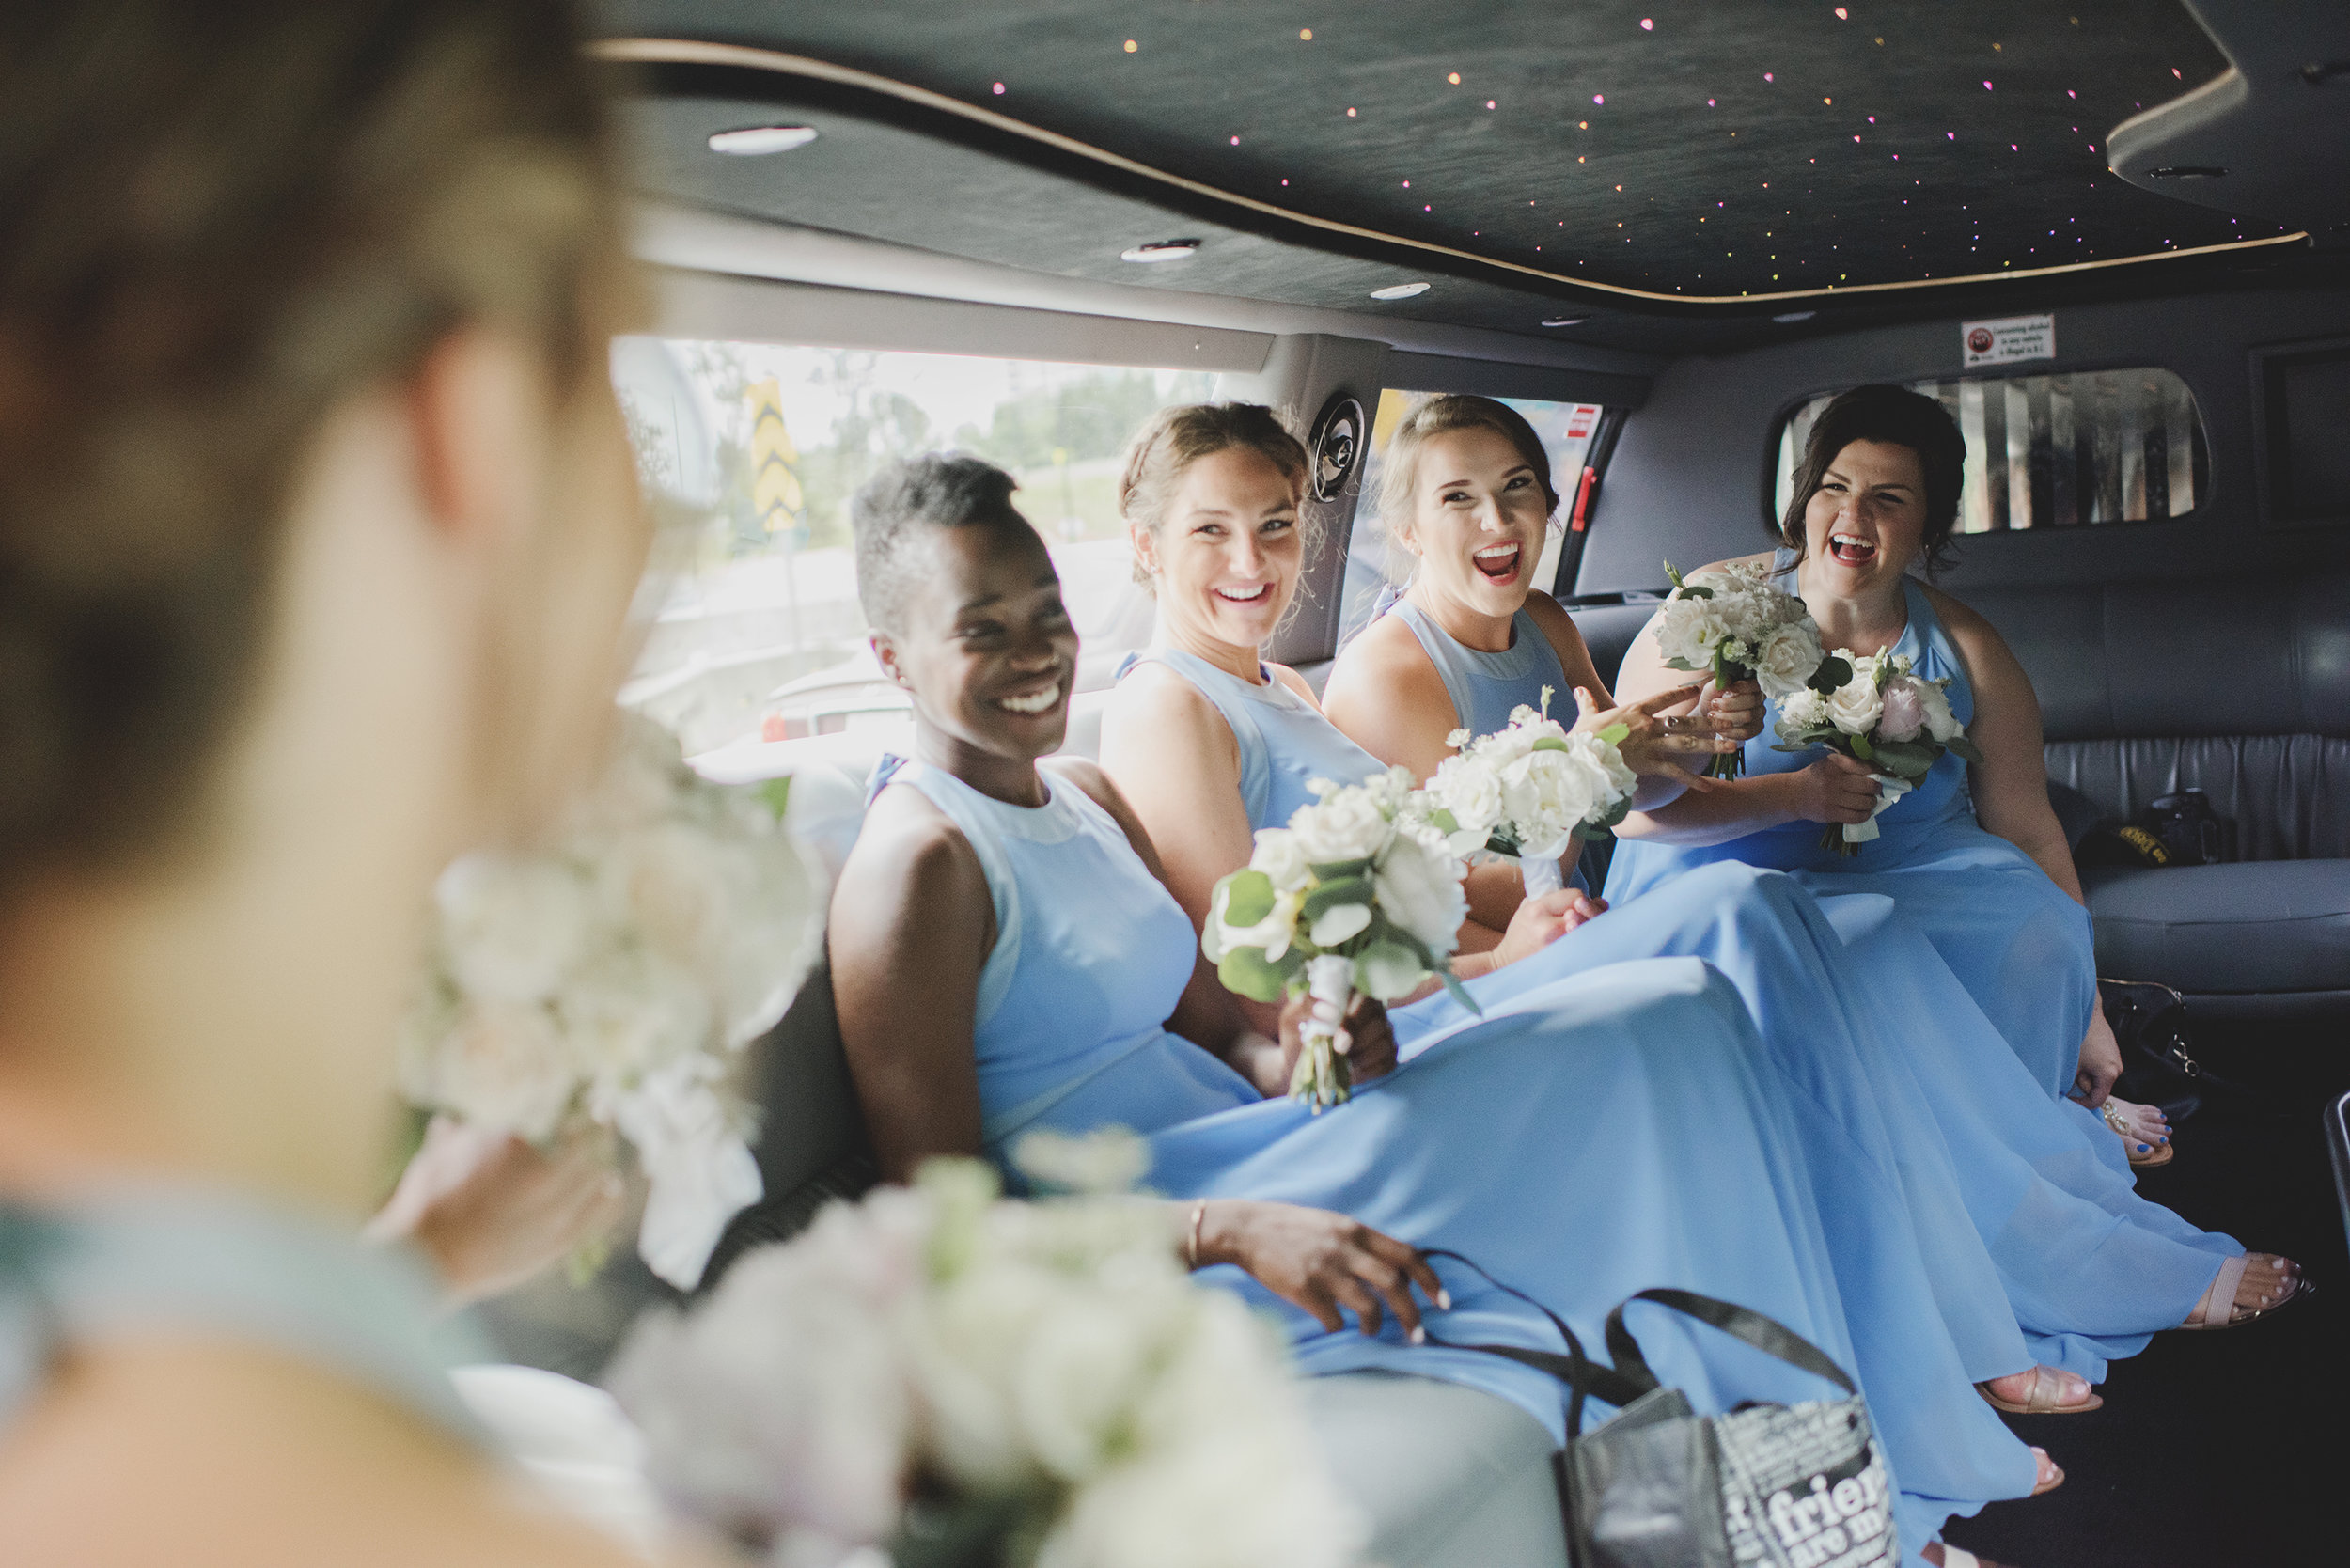 M&J_Mariah & Bridesmaids-255.jpg